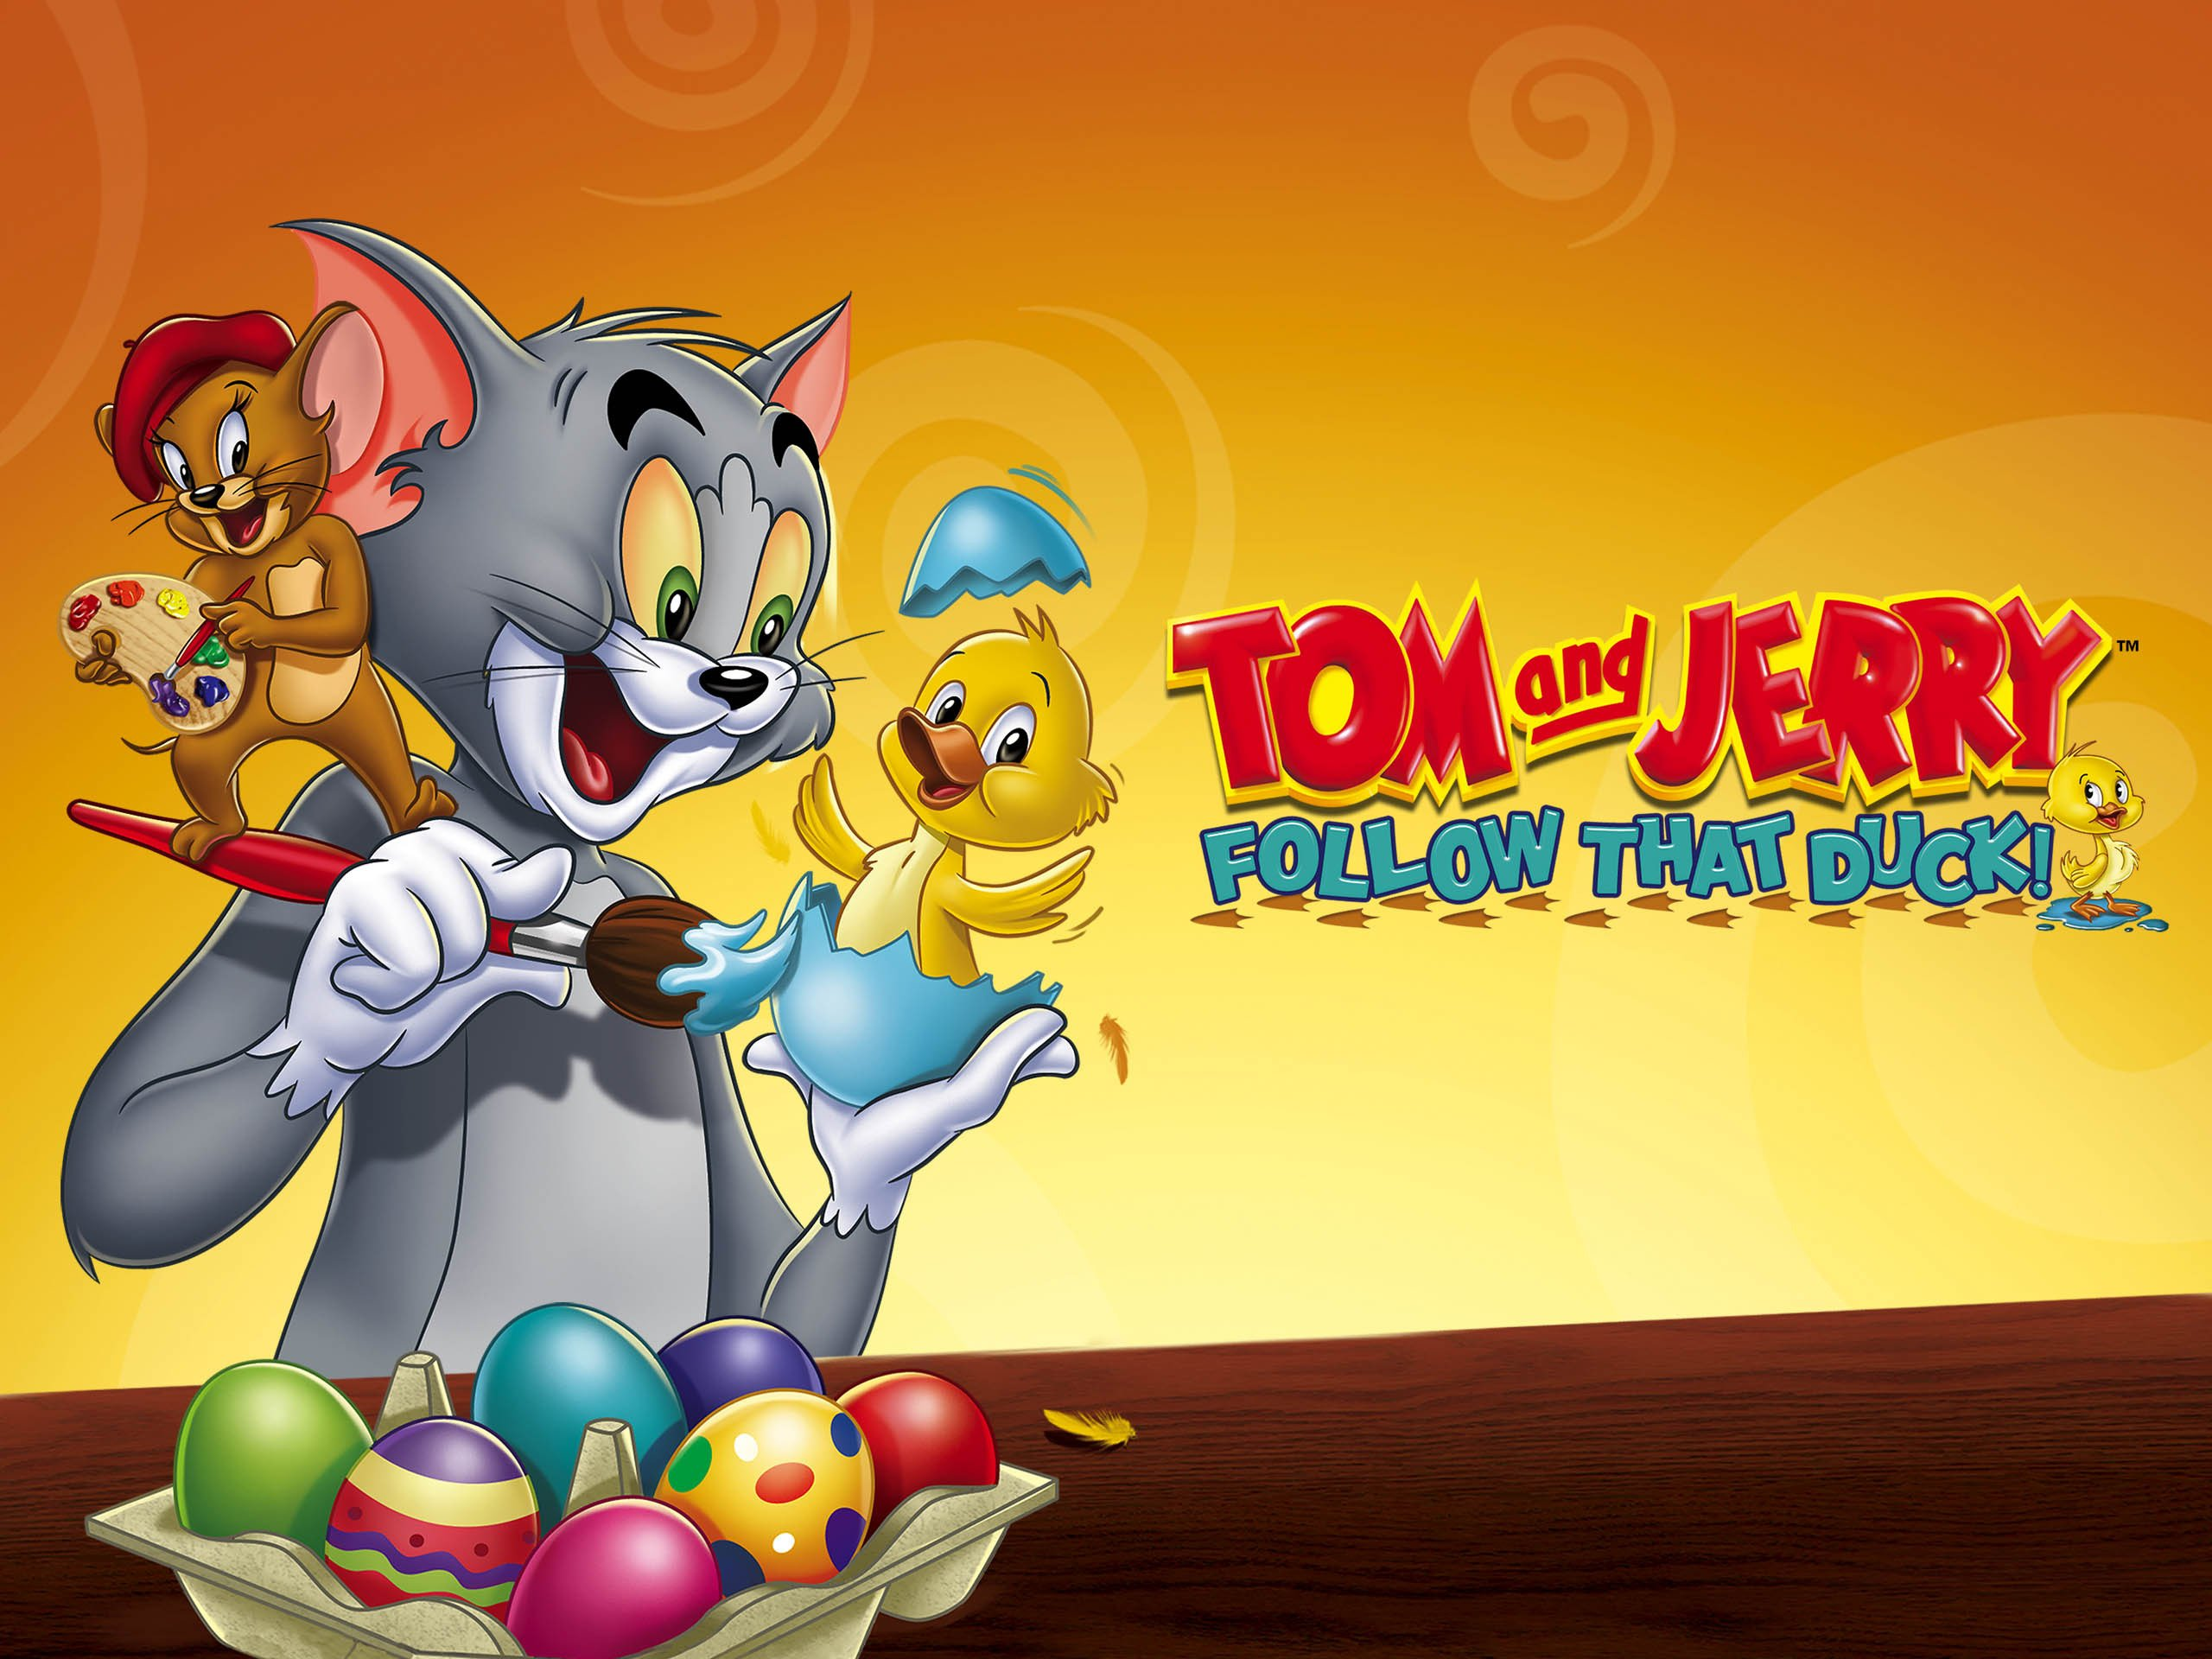 Amazon co uk: Watch Tom and Jerry: Season 1 Follow that Duck